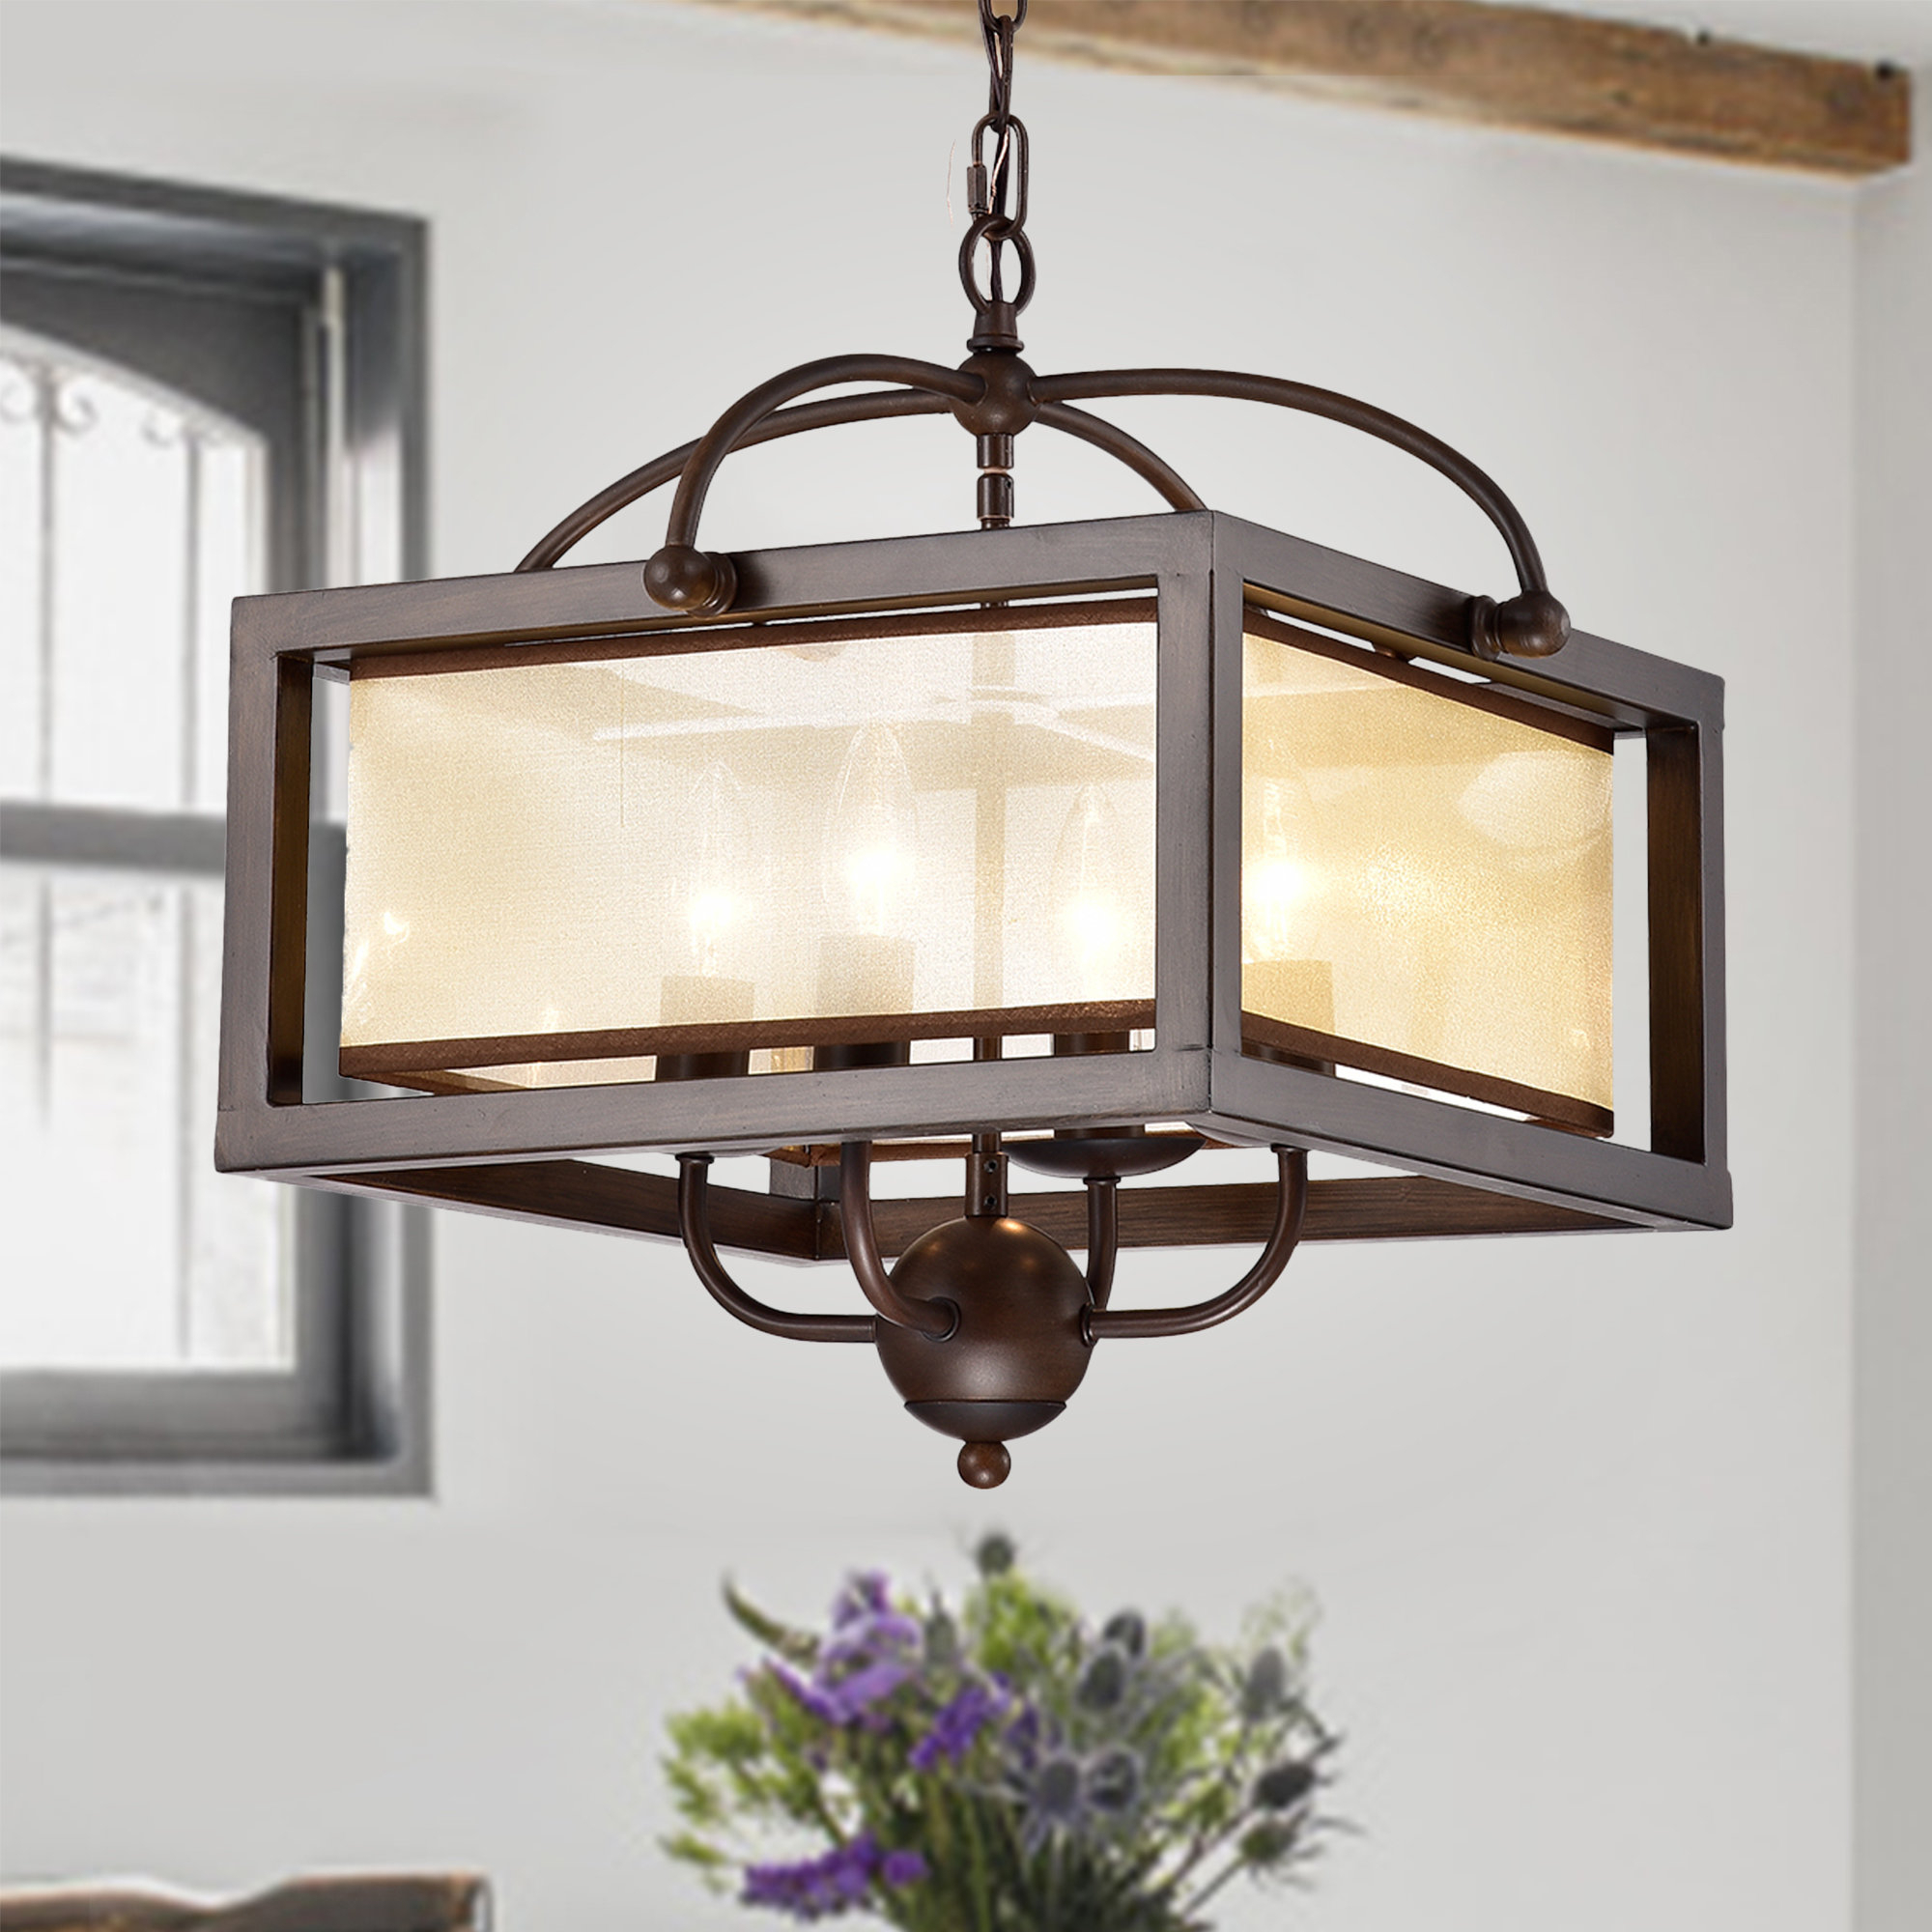 Gracie Oaks Cambra 4 Light Square/rectangle Chandelier Within Ellenton 4 Light Rectangle Chandeliers (View 8 of 30)